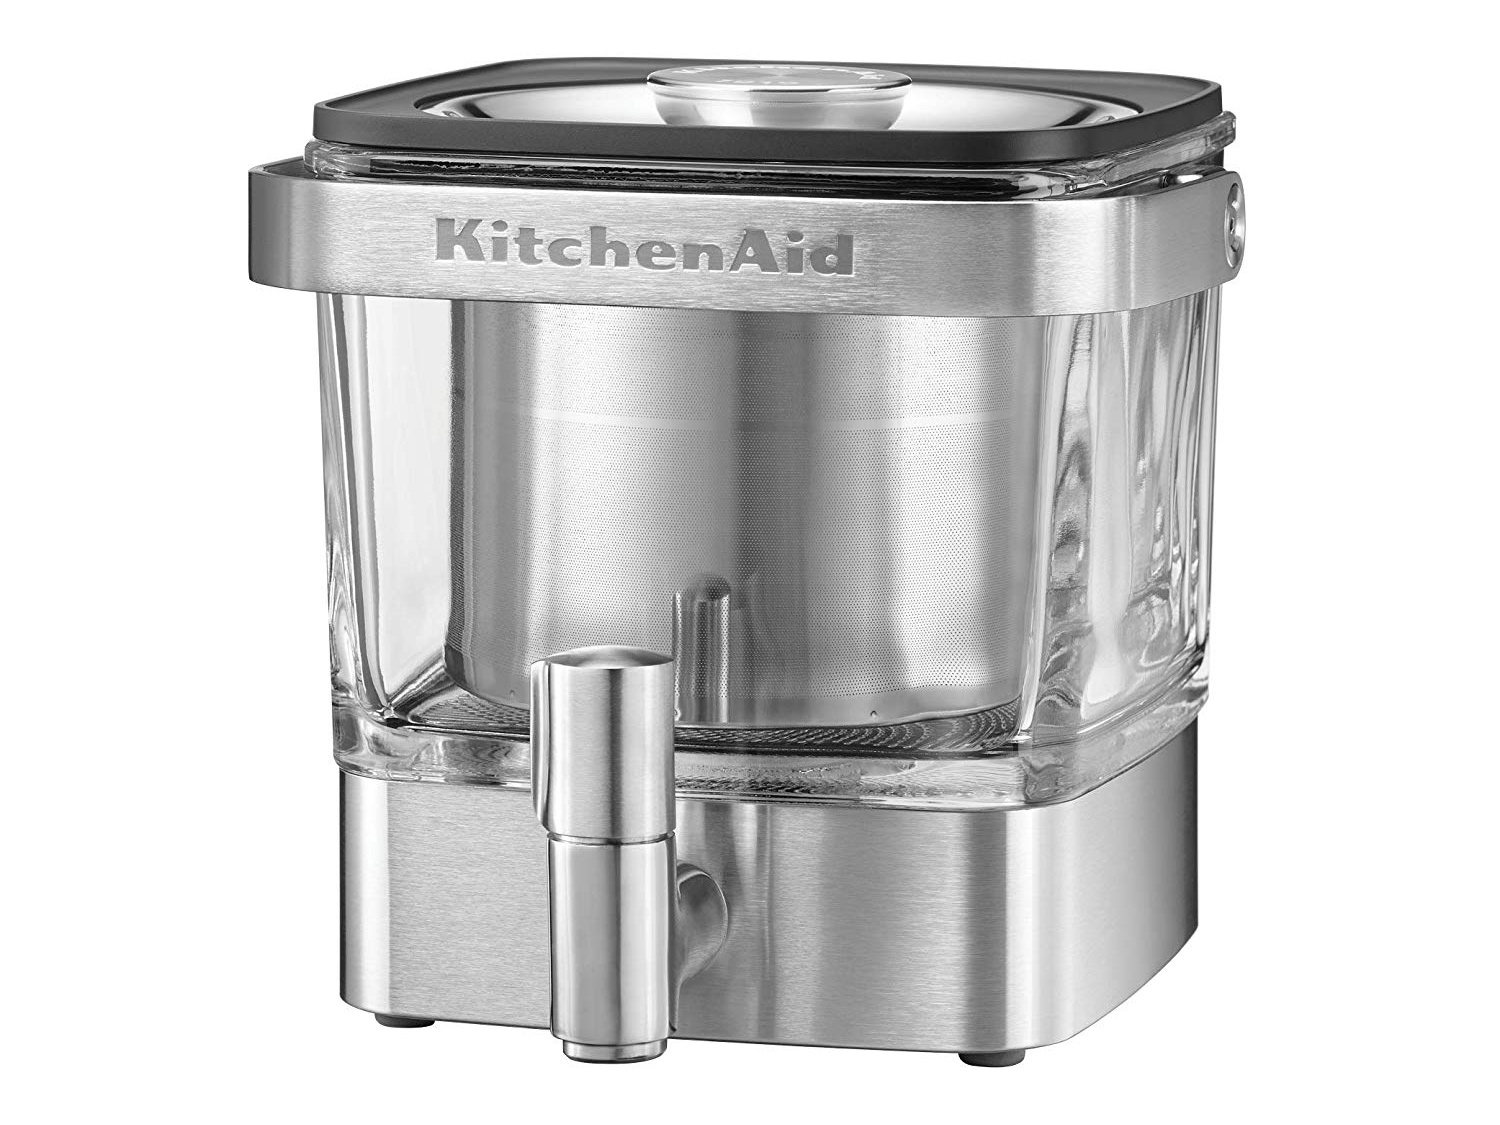 KitchenAid KCM4212SX Cold Brew Coffee Maker-Brushed Stainless Steel